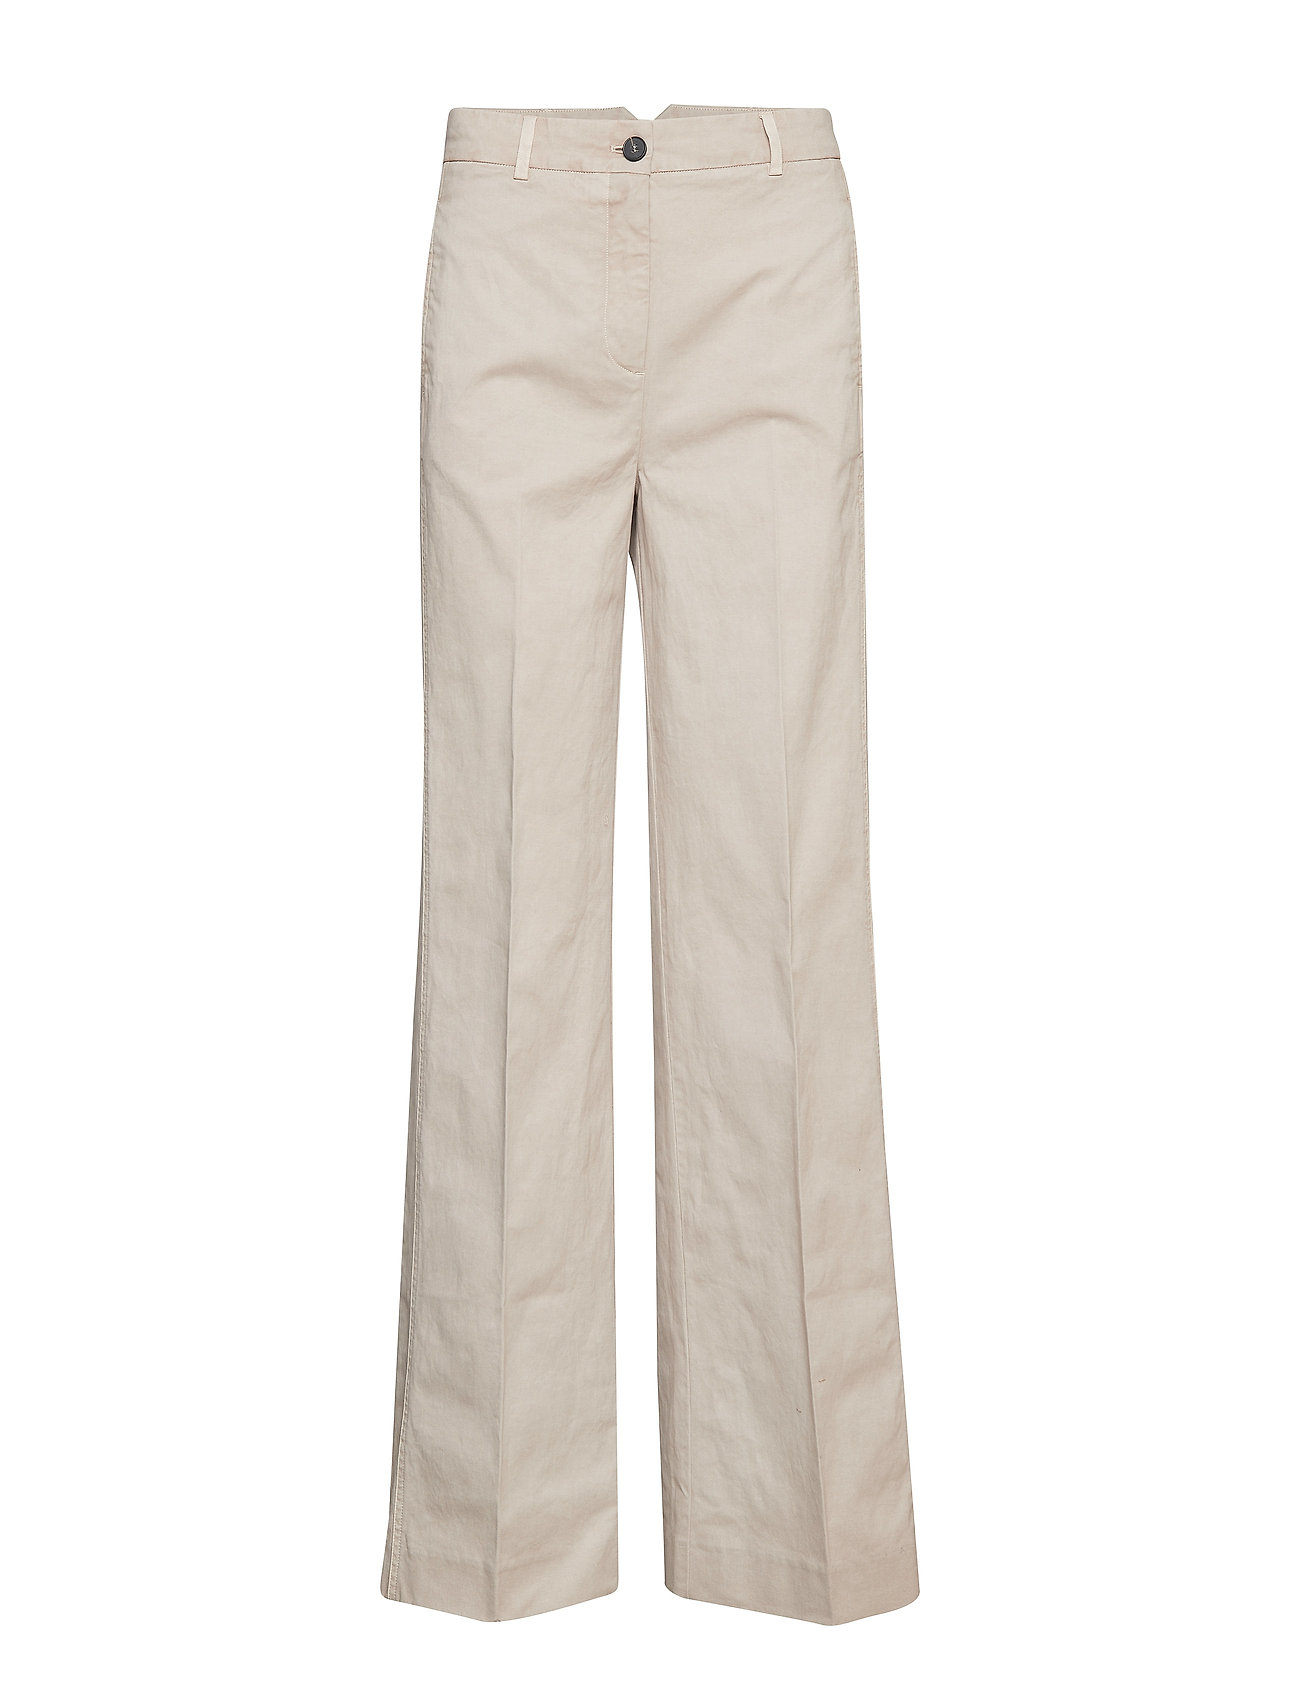 Image of Caia Hw Chino Vide Bukser Lyserød Tommy Hilfiger (3172668069)